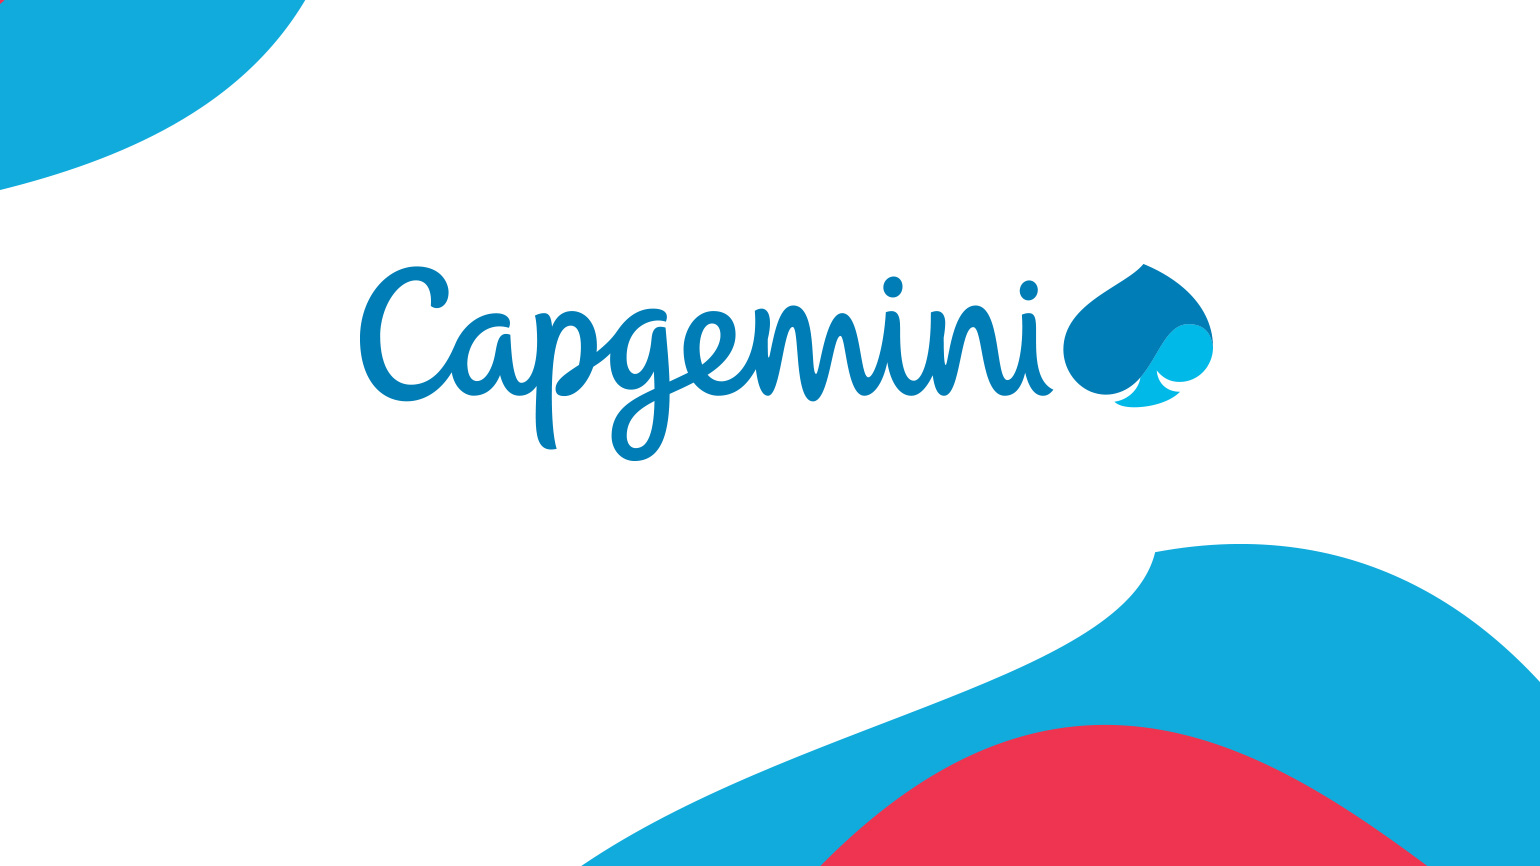 Capgemini plans to appoint Carole Ferrand as Group Chief Financial Officer